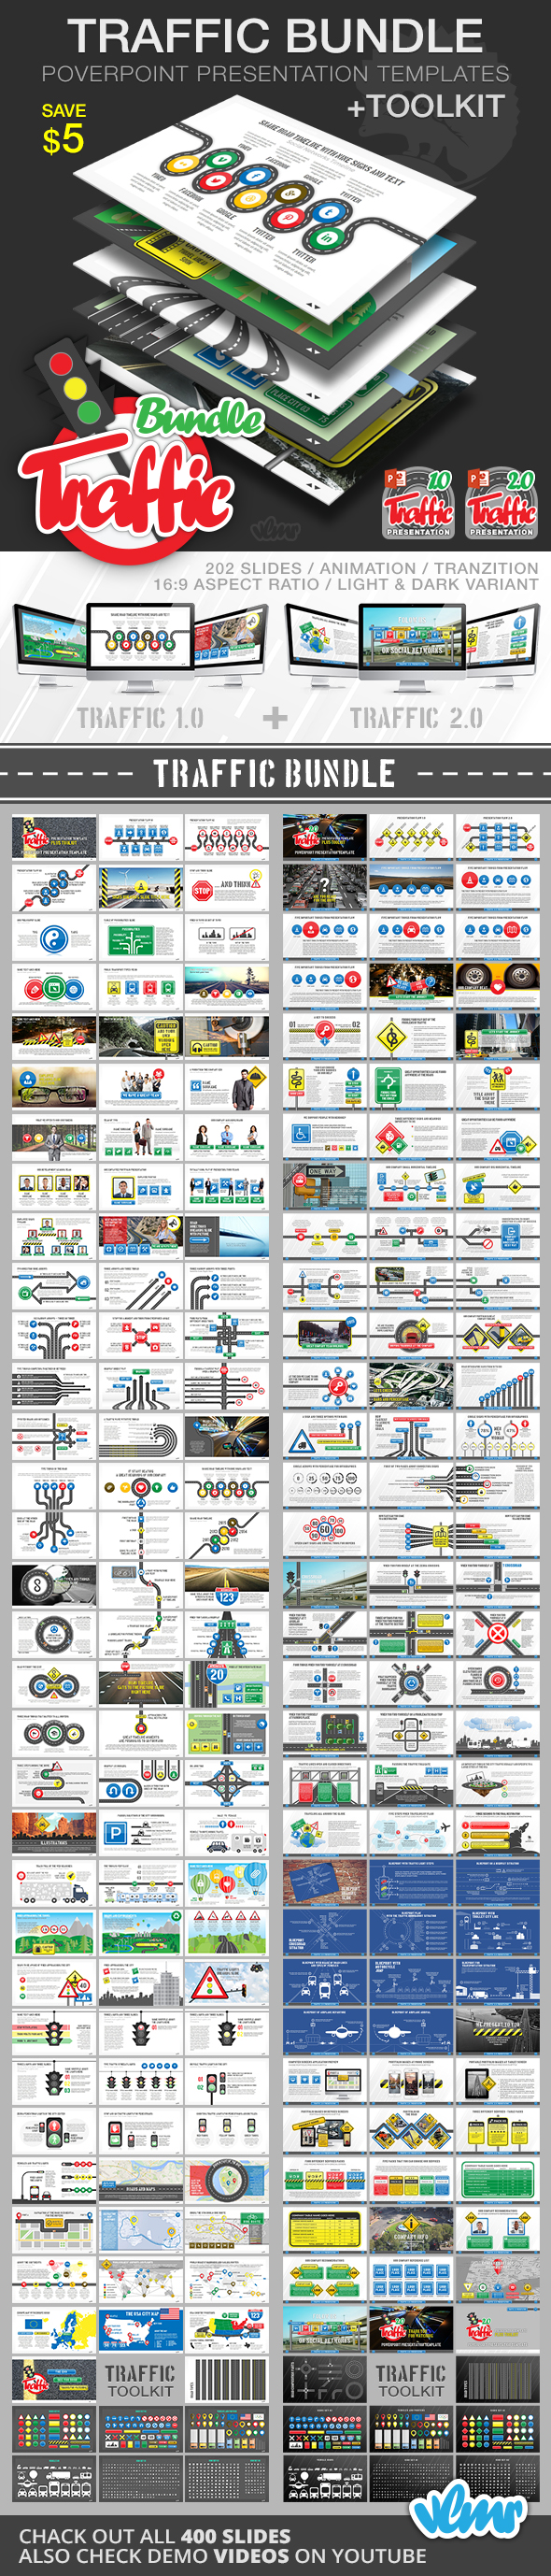 Traffic PowerPoint Presentation Bundle - Creative PowerPoint Templates